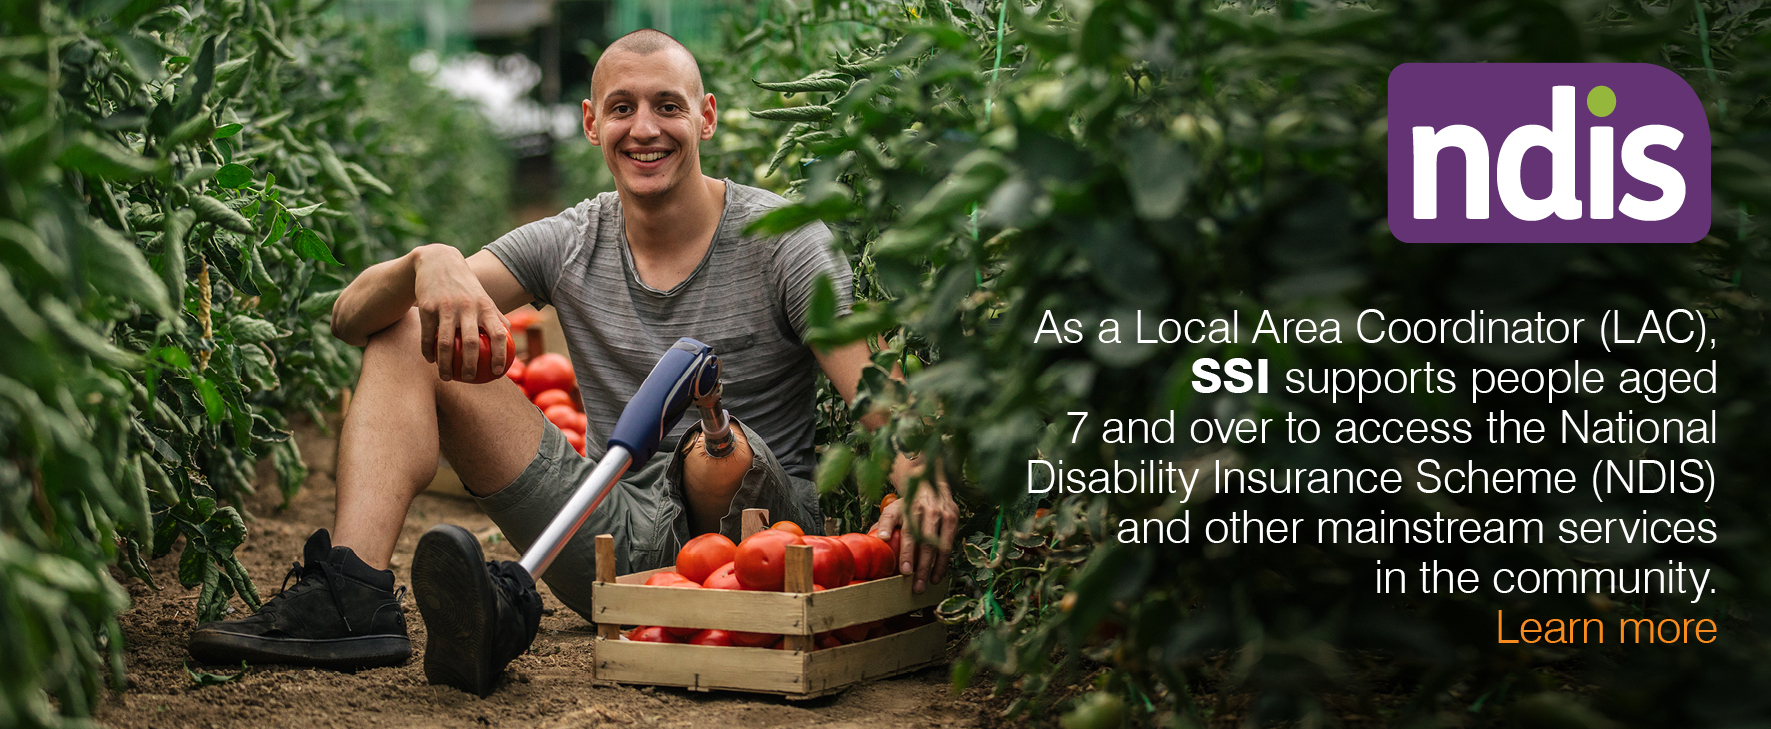 As a Local Area Coordinator (LAC), SSI supports people aged 7 and over to access the National Disability Insurance Scheme (NDIS) and other mainstream services in the community. Learn more.